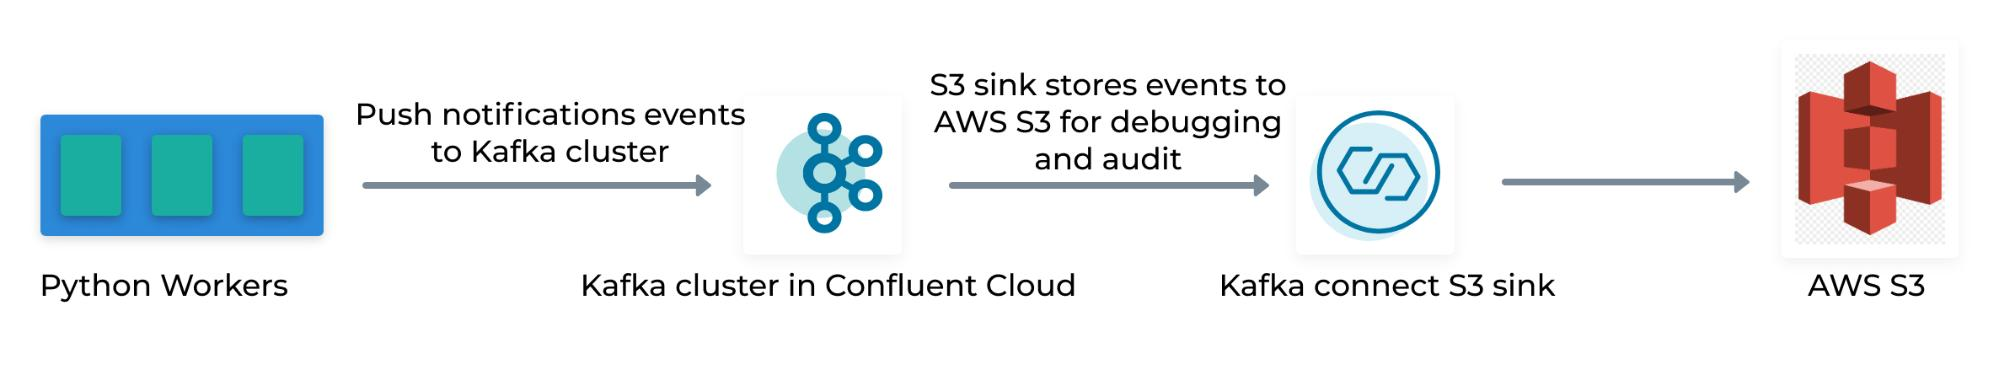 Python | Kafka Cluster in Confluent Cloud | S3 Sink | AWS S3